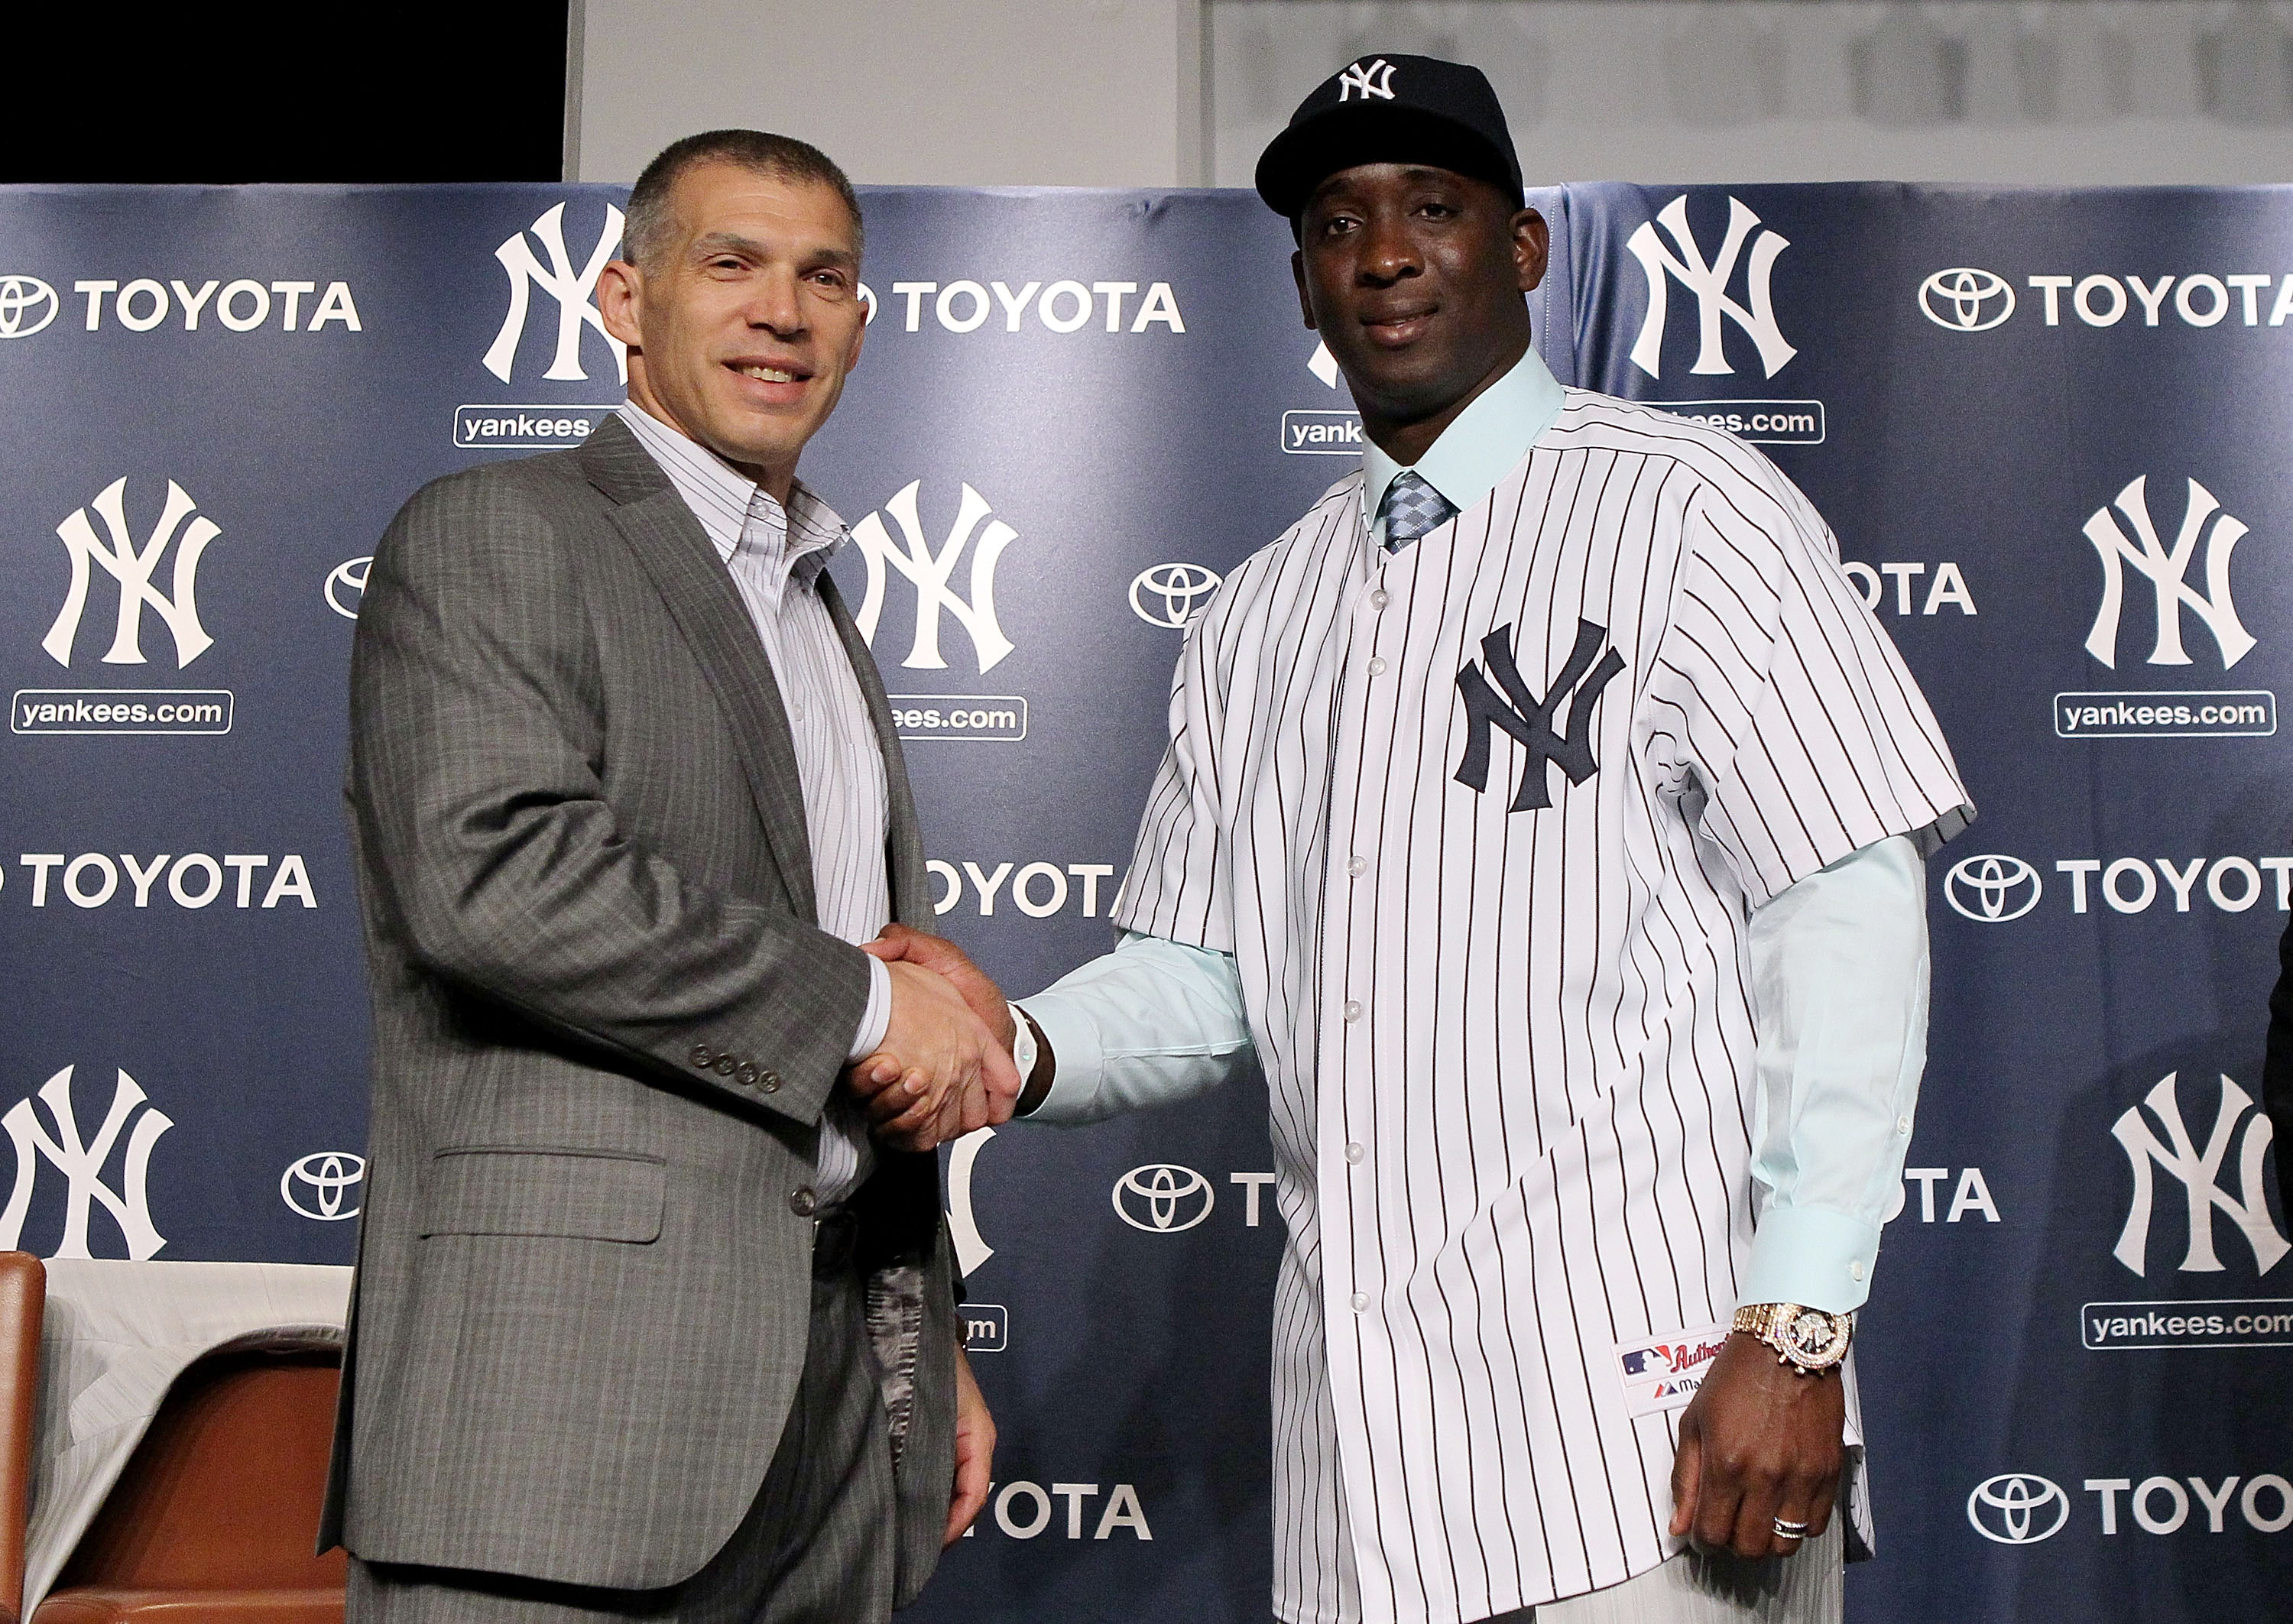 The Yanks added Soriano in January, giving Joe Girardi a new weapon in what was already a top-notch bullpen.